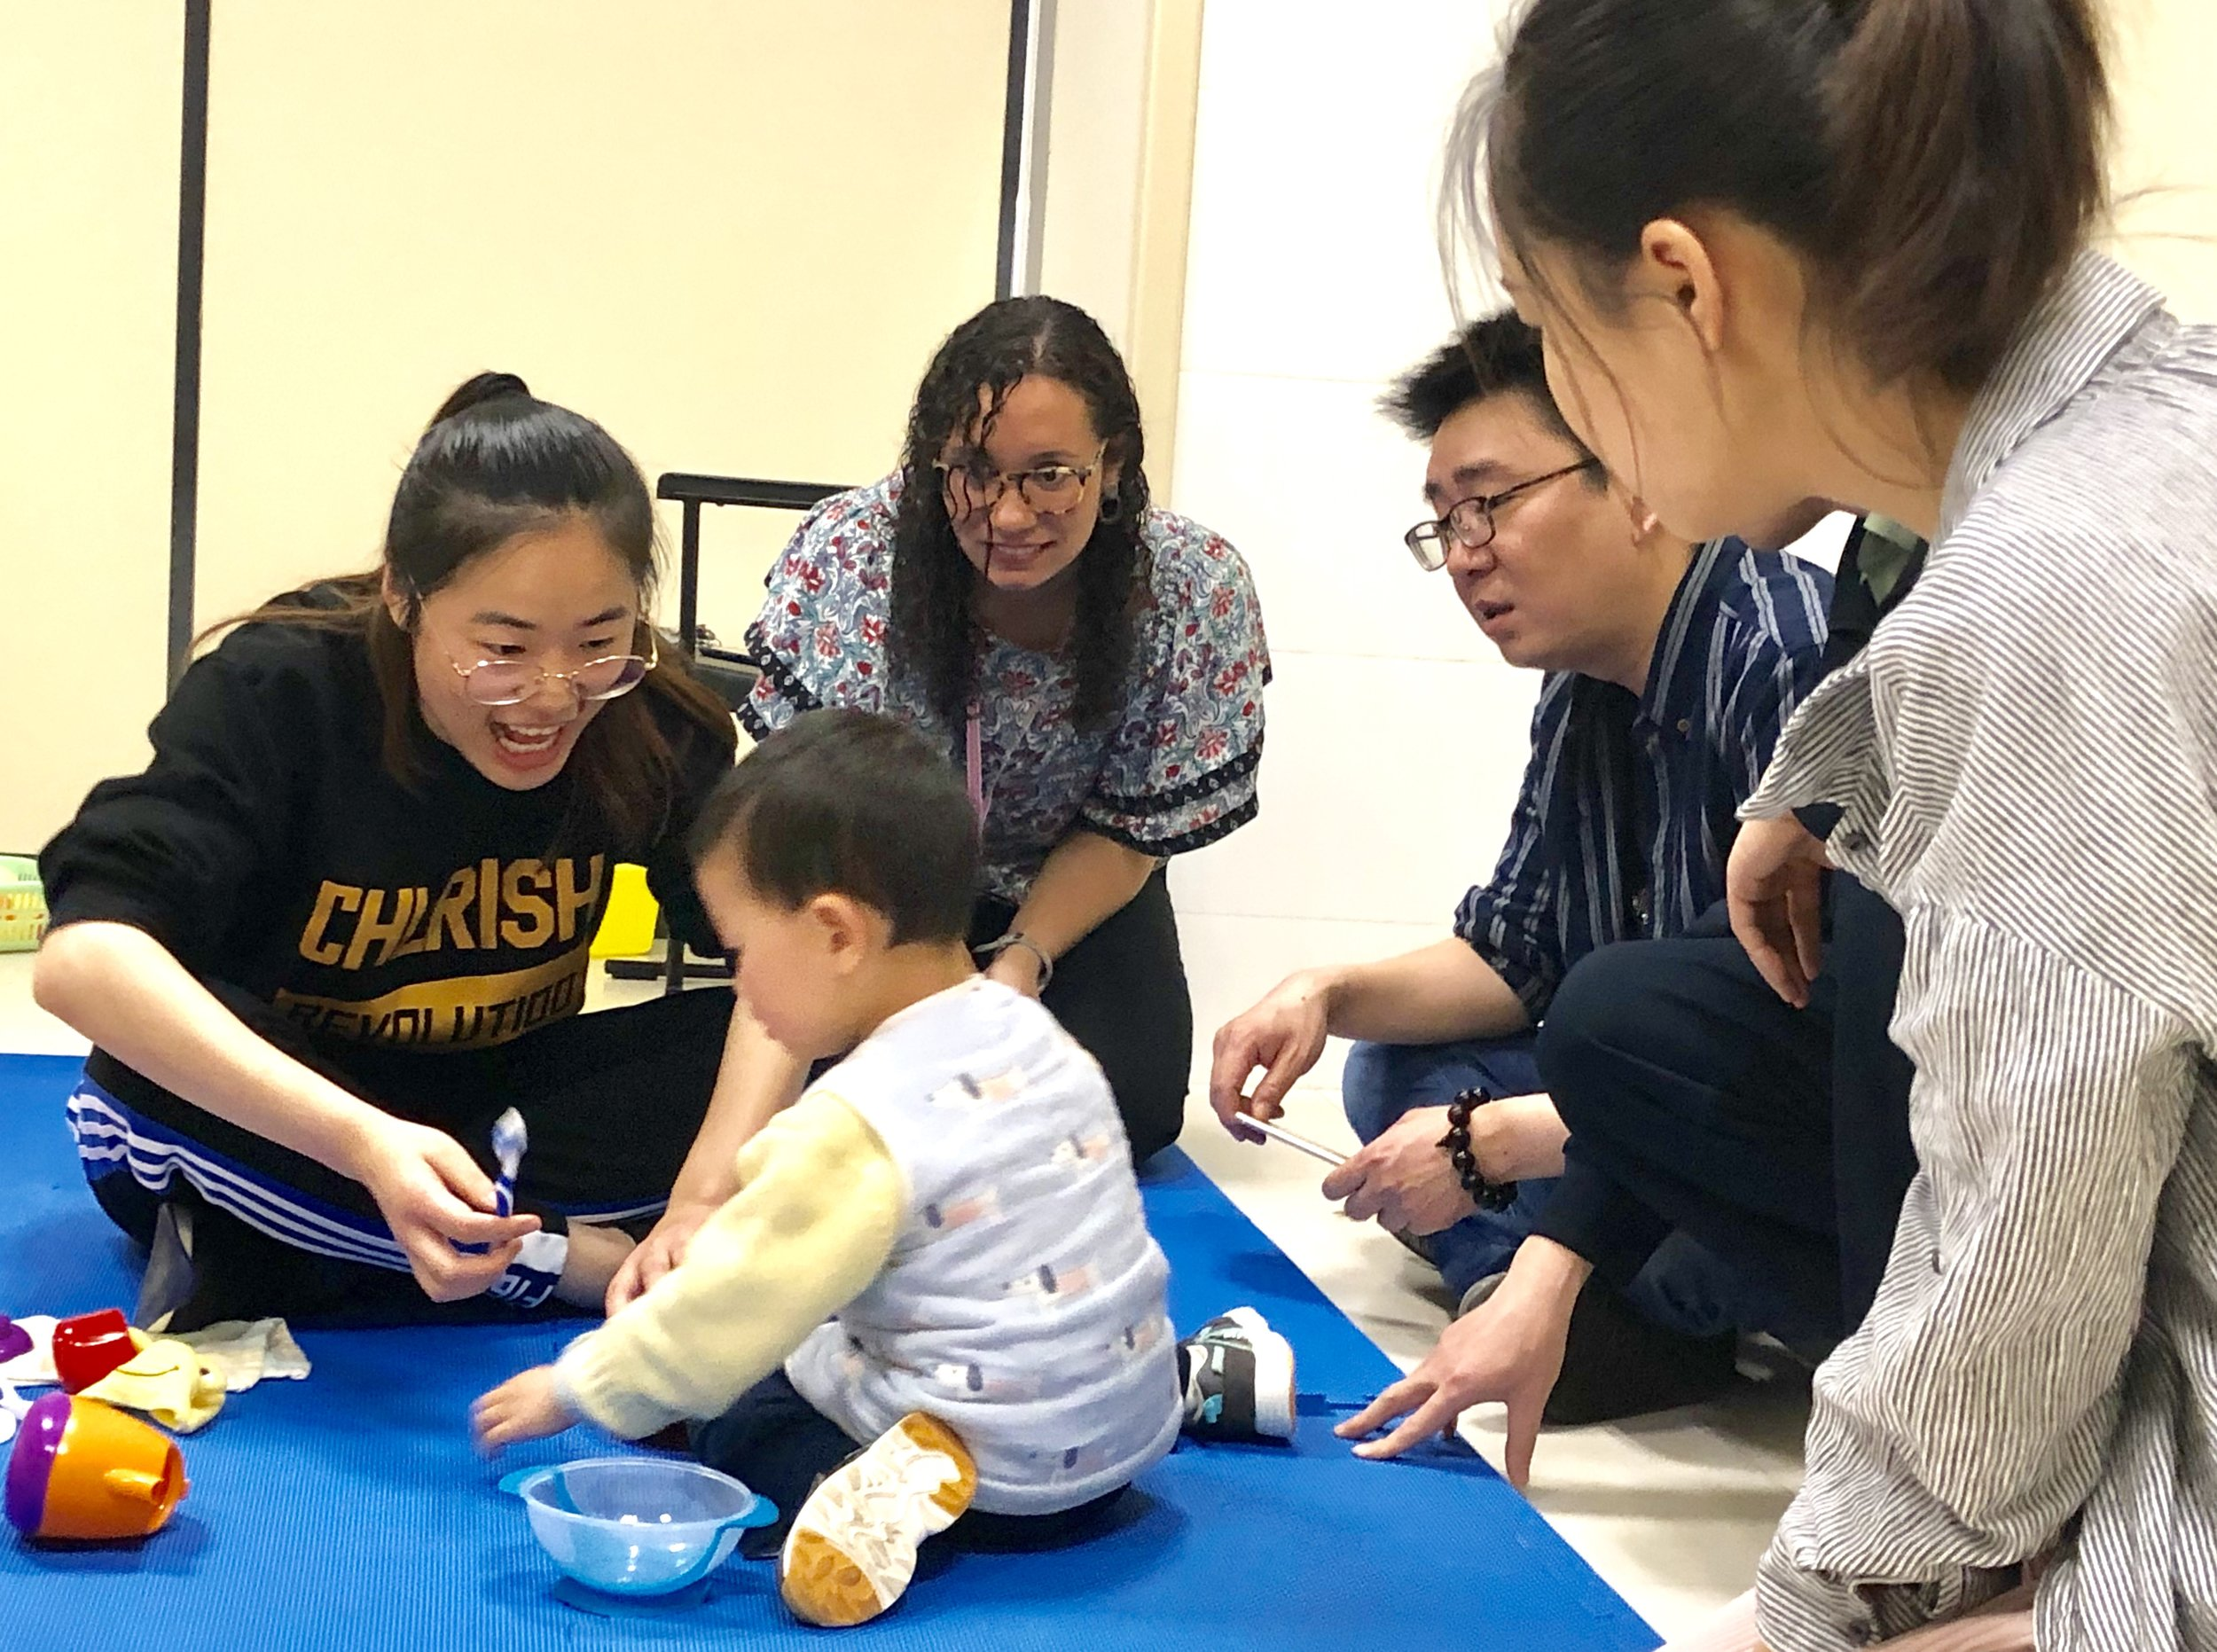 Autism Training in Hunan - In a collaborative effort with the Yale Child Study Center, the Center for Children with Special Needs, local Hunan NGO Ruijian, and health professionals at Xiangya Hospital, Yale-China facilitates workshops and online training for families of children with Autism.